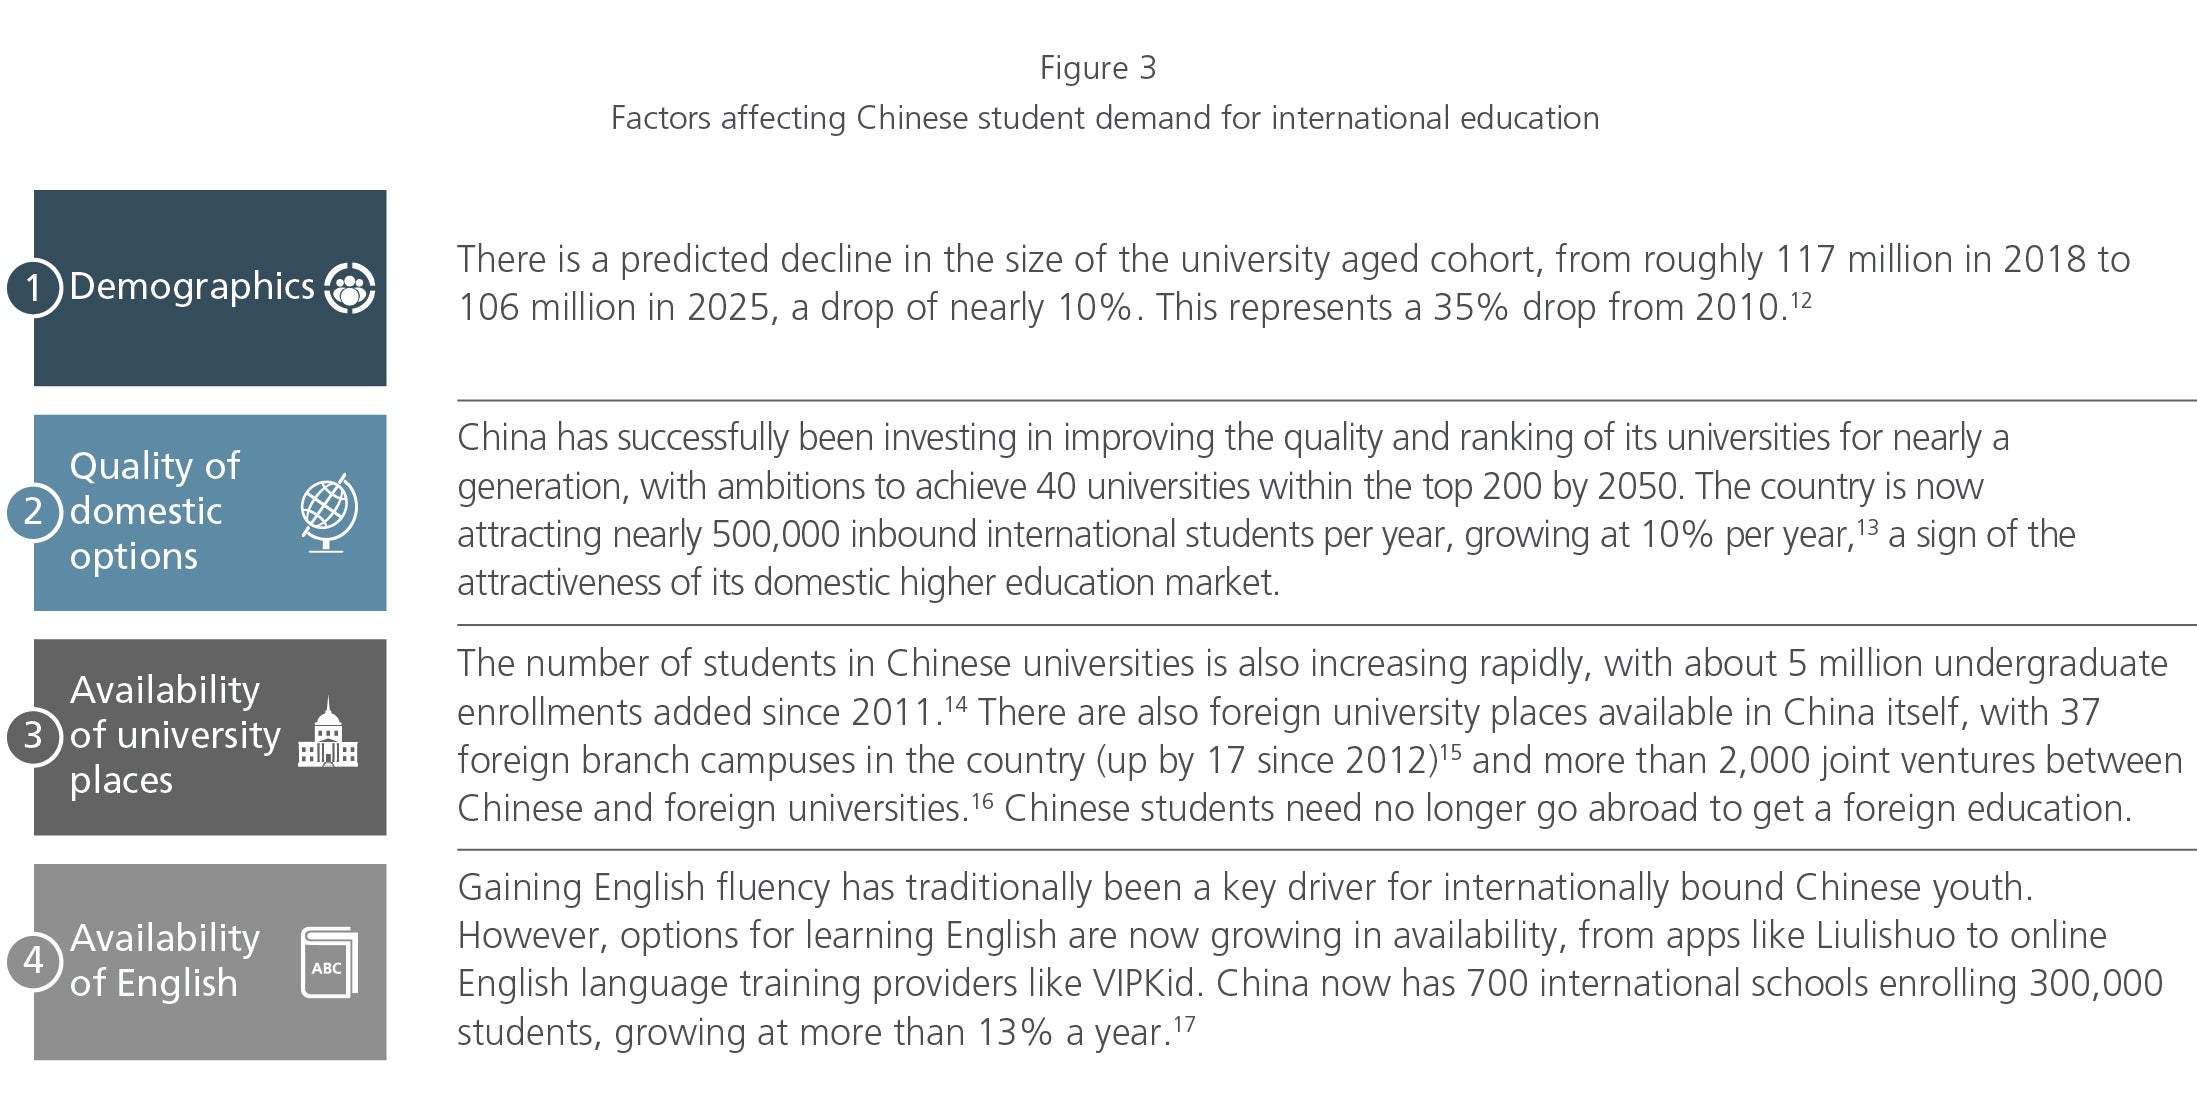 factors affecting Chinese student demand for international ed